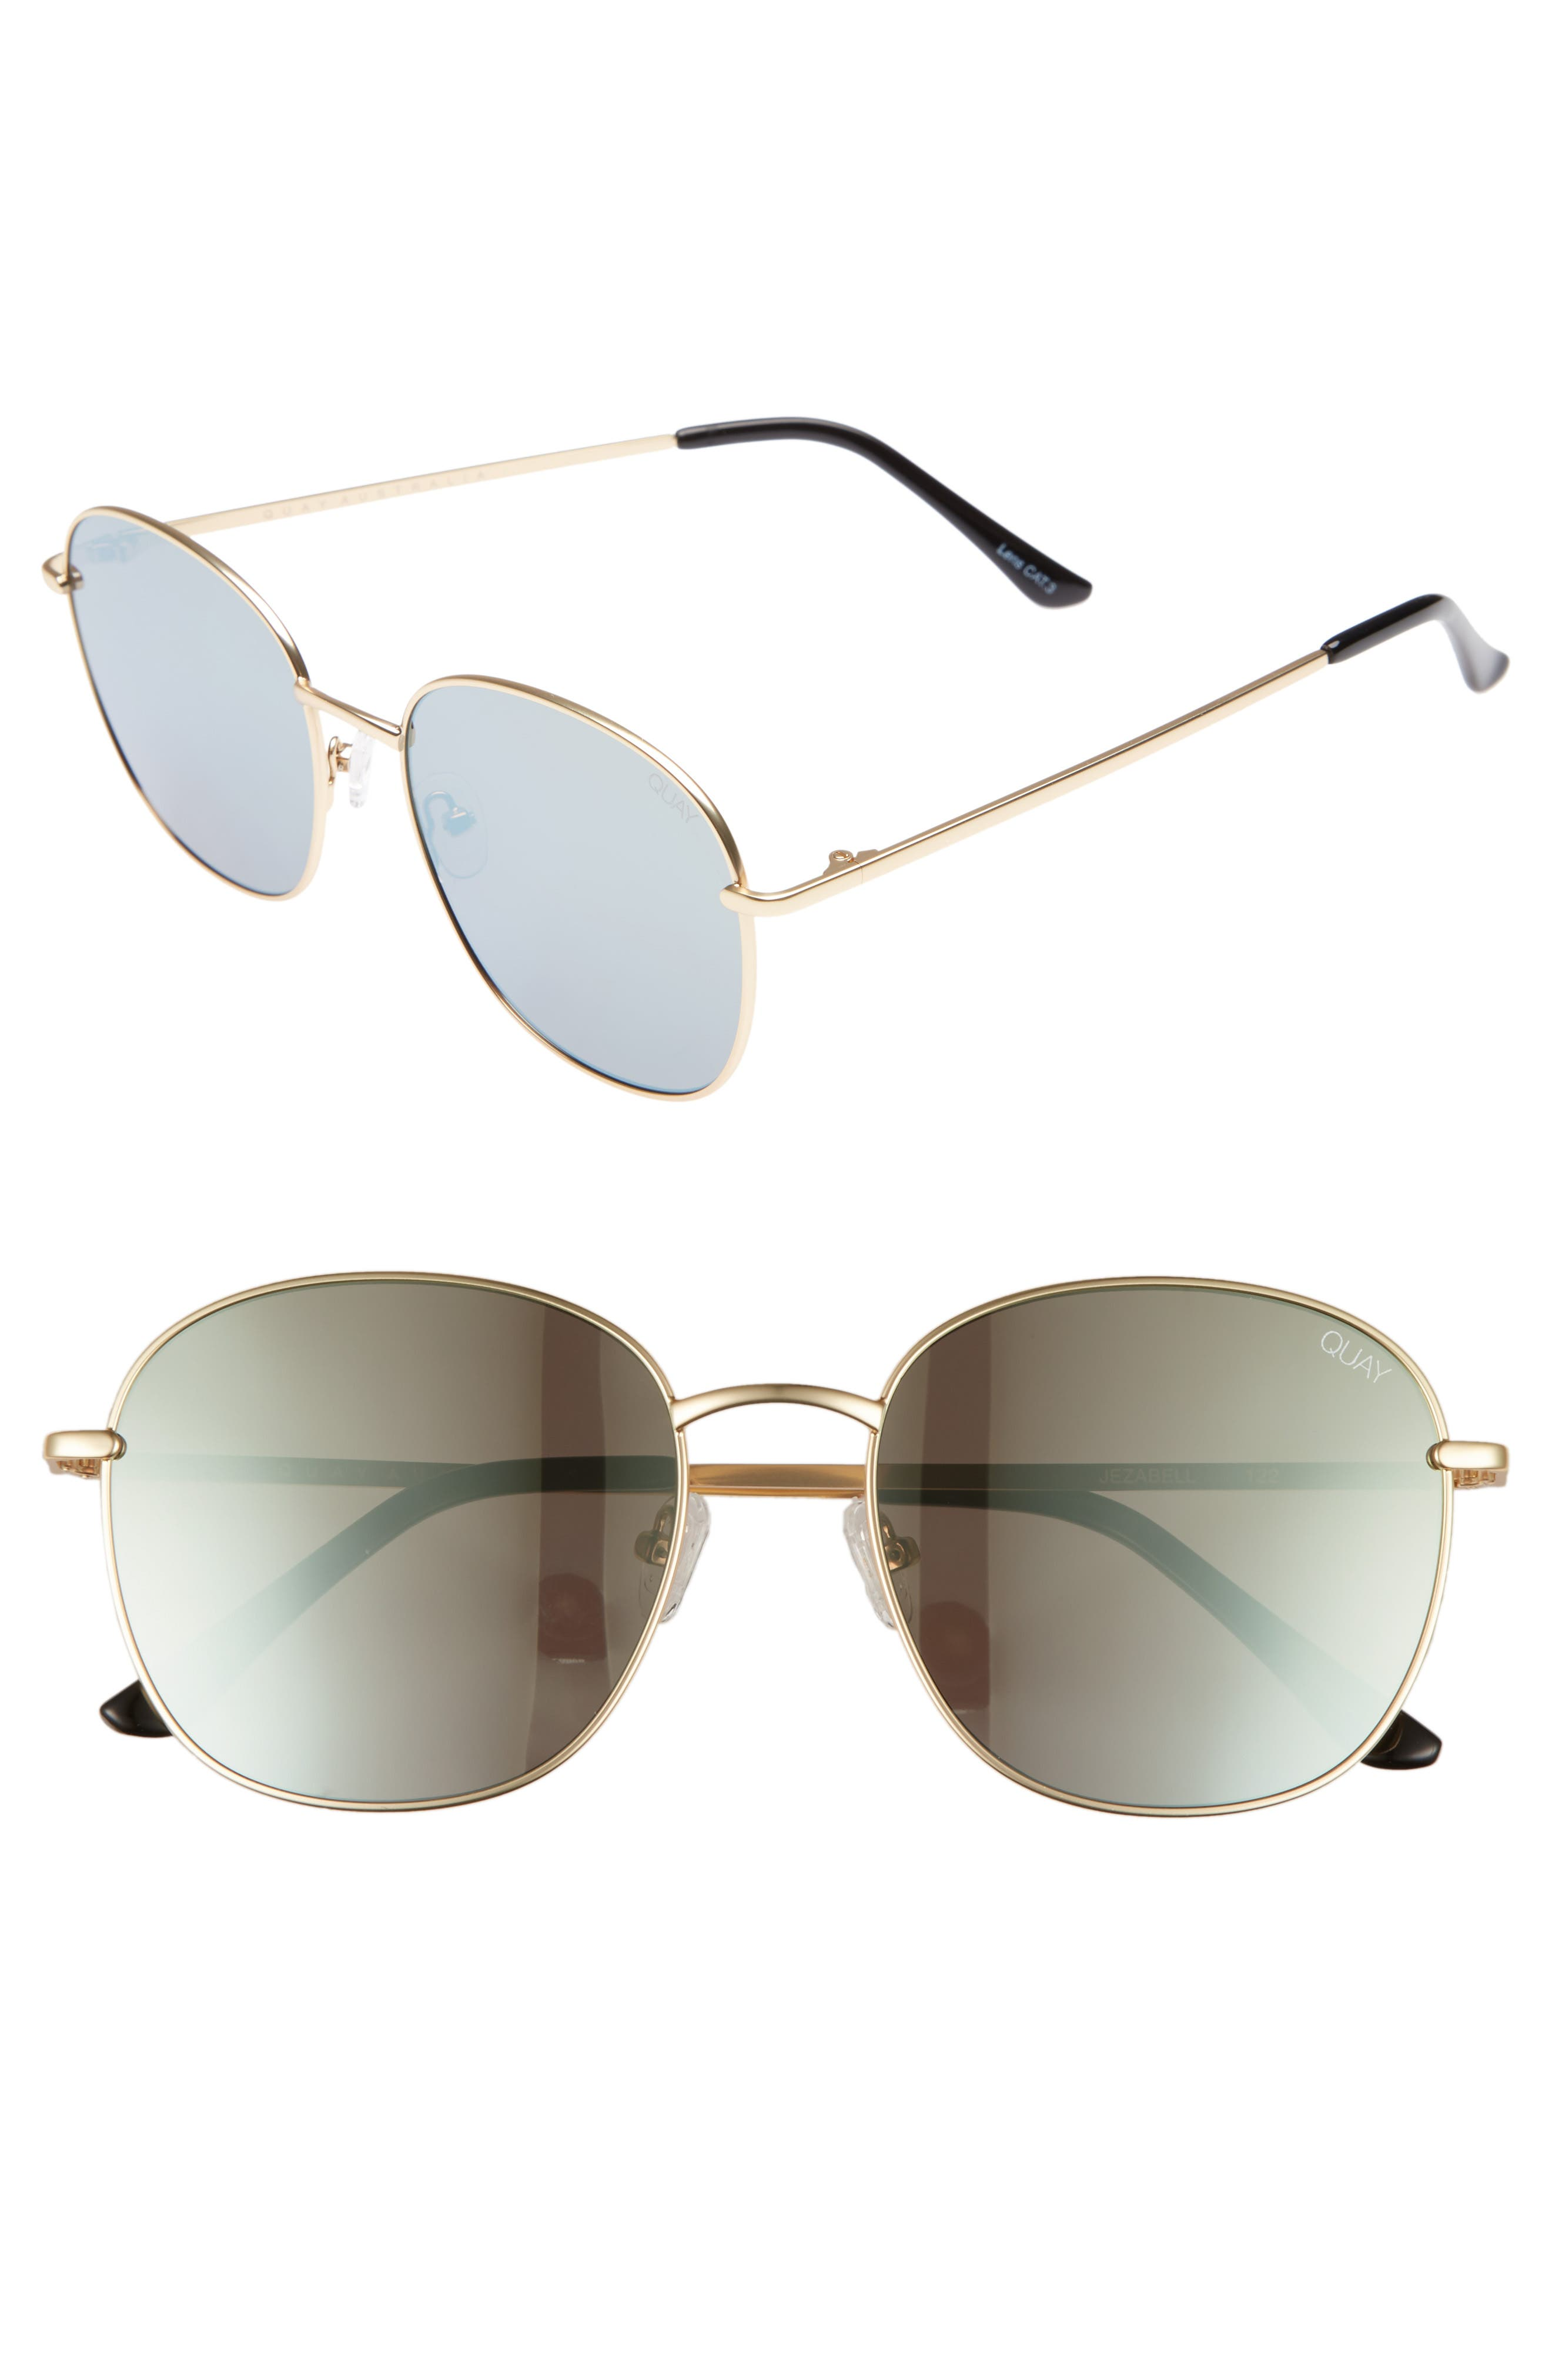 Jezabell 57mm Round Sunglasses,                         Main,                         color, GOLD/ GOLD